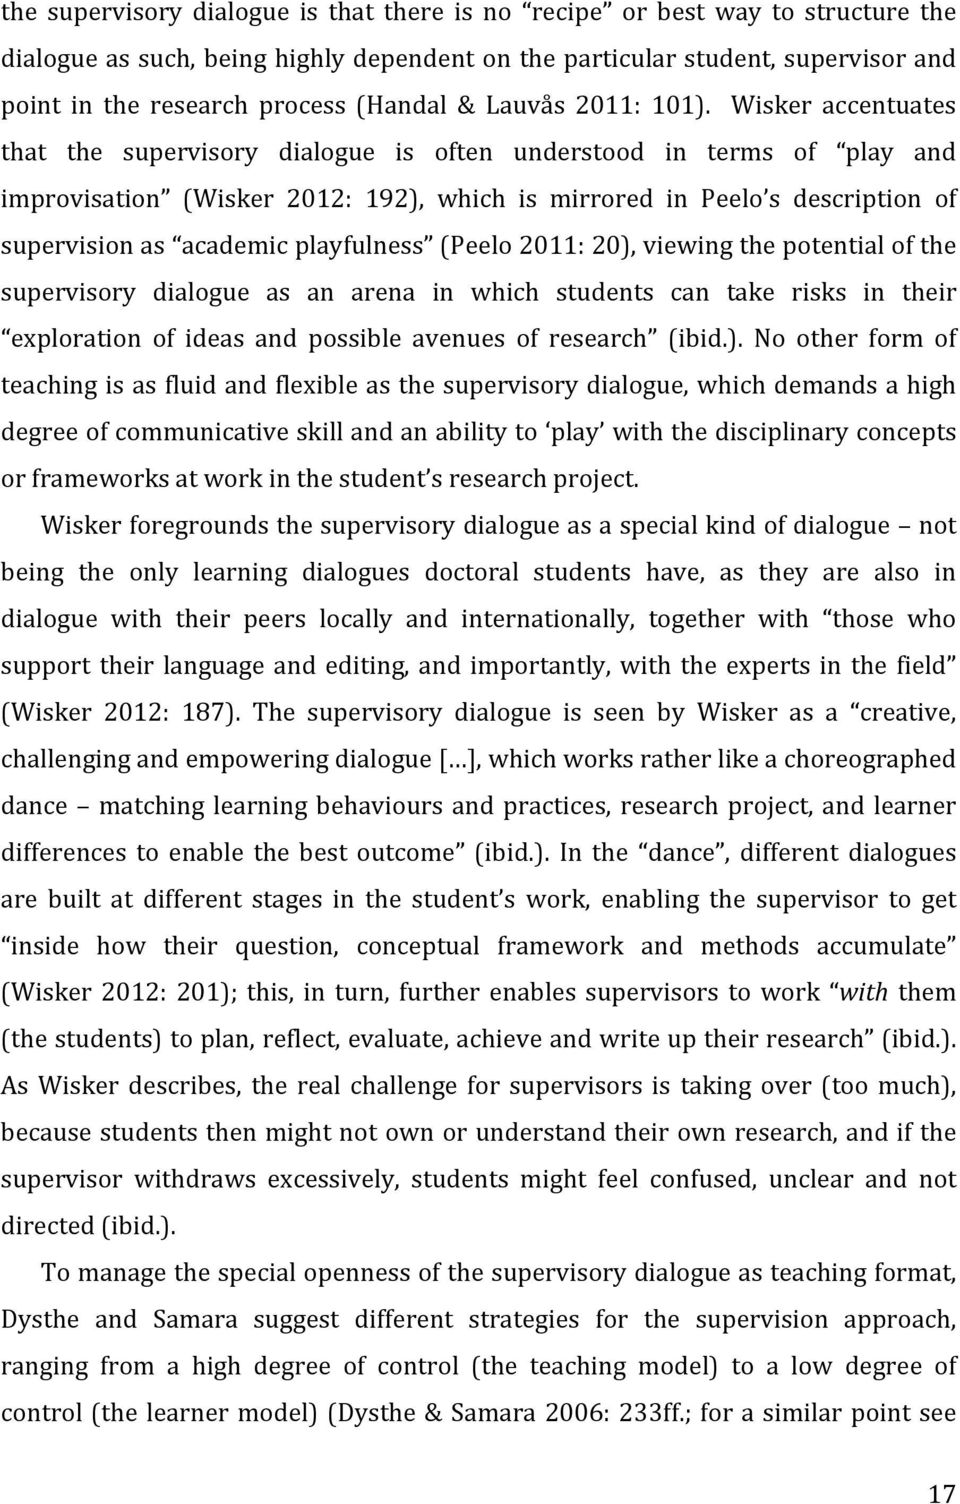 Wisker accentuates that the supervisory dialogue is often understood in terms of play and improvisation (Wisker 2012: 192), which is mirrored in Peelo s description of supervision as academic